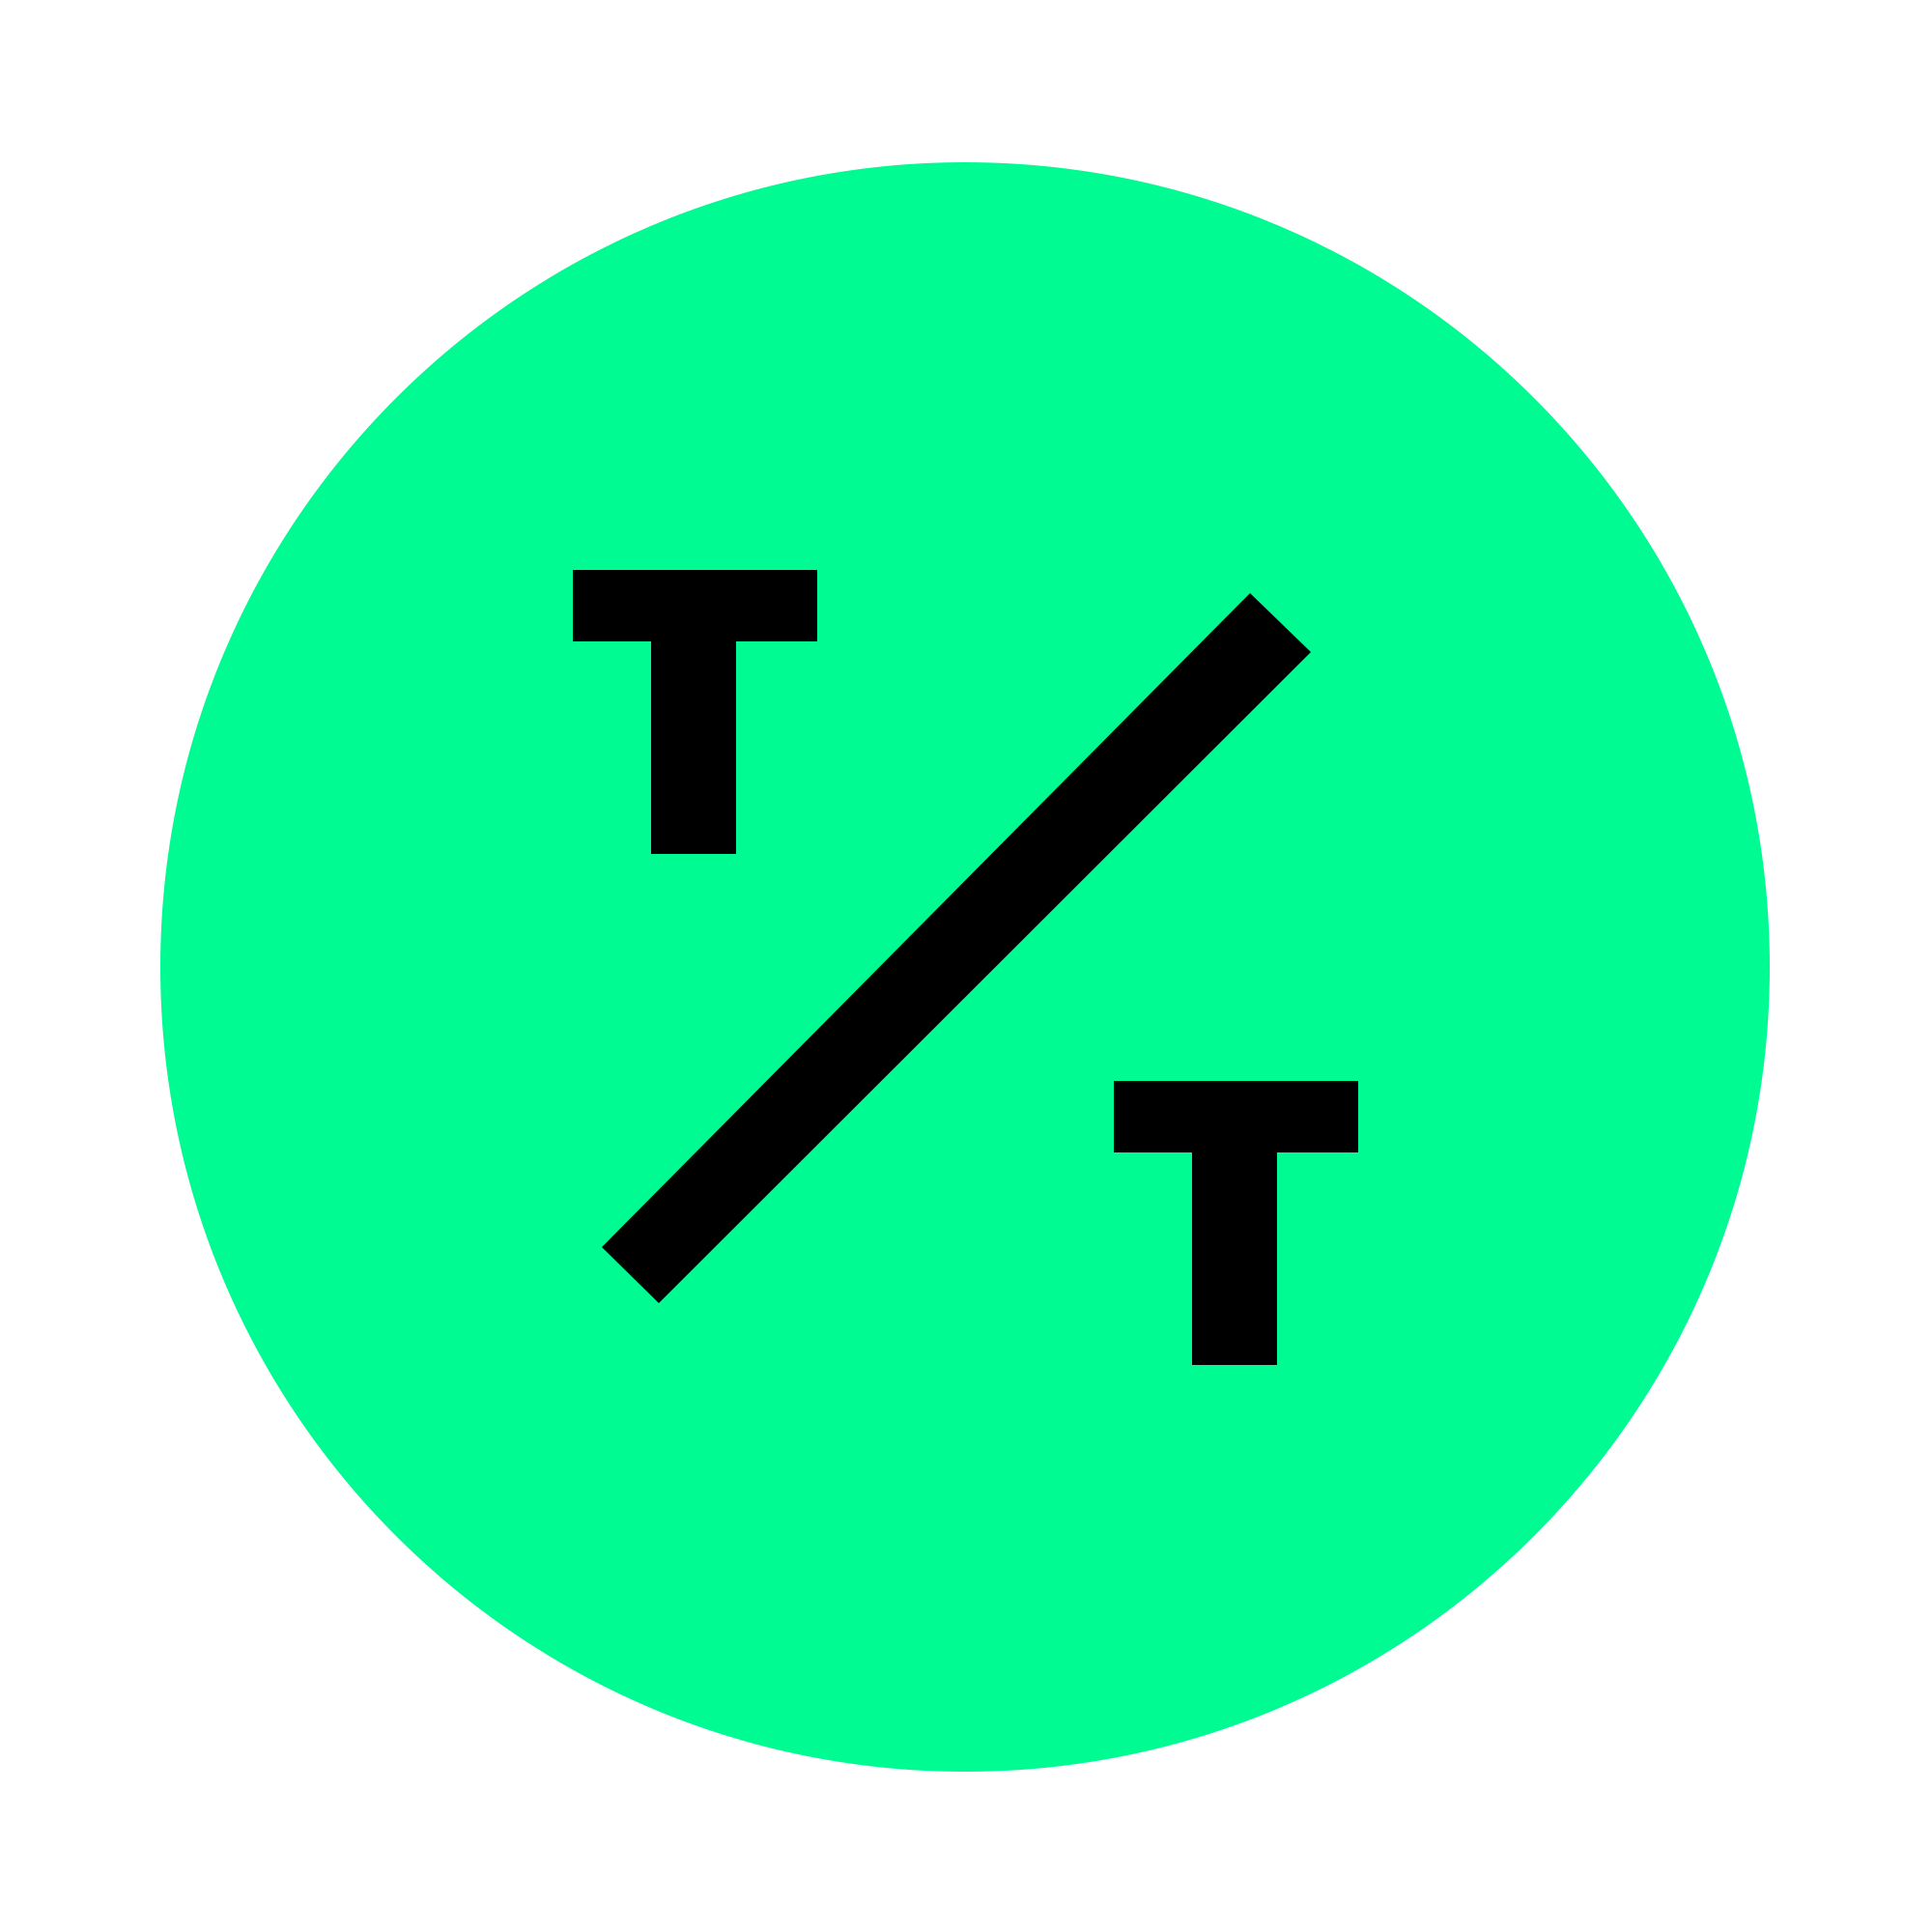 TicToc by Bloomberg's logo